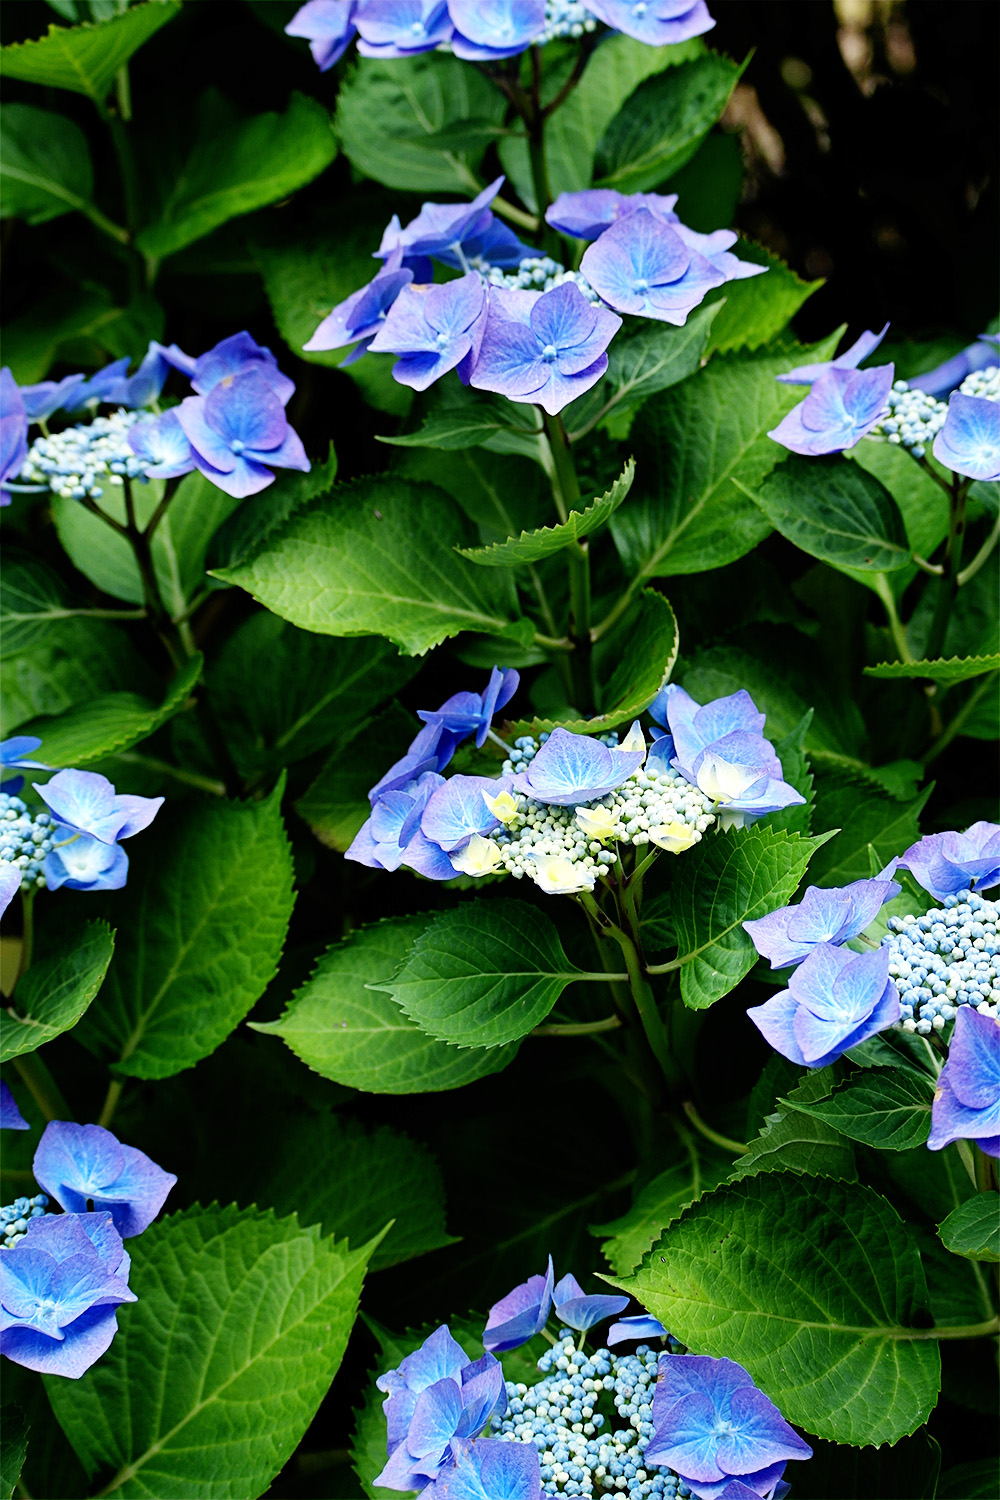 Blue has to be my favourite colour hydrangea